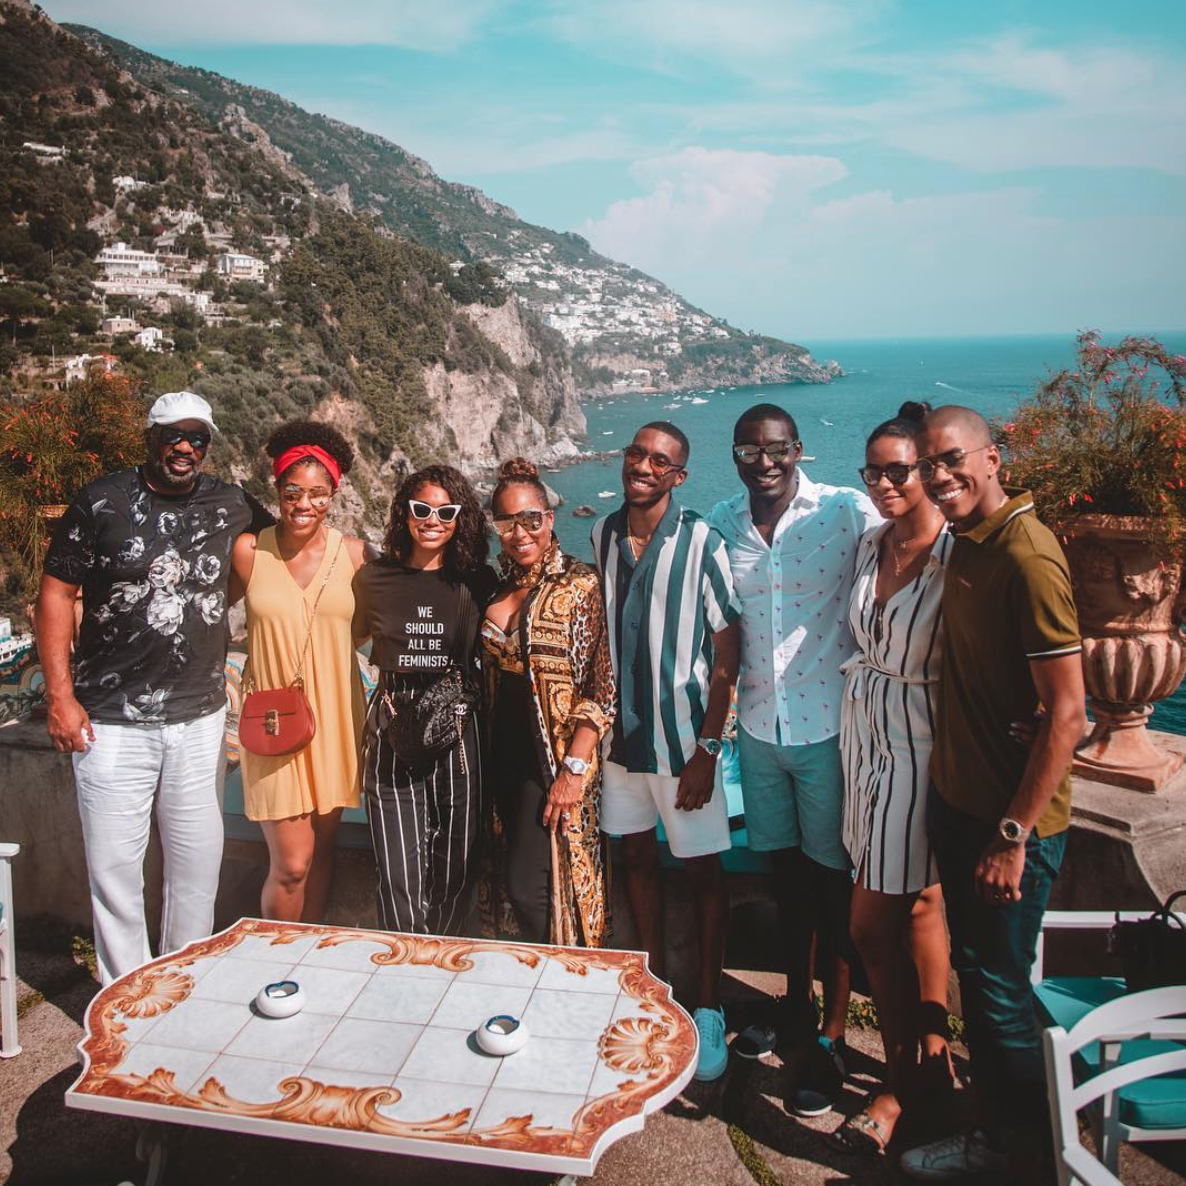 Steve And Marjorie Harvey Are On An Epic Family Vacation In Saint-Tropez